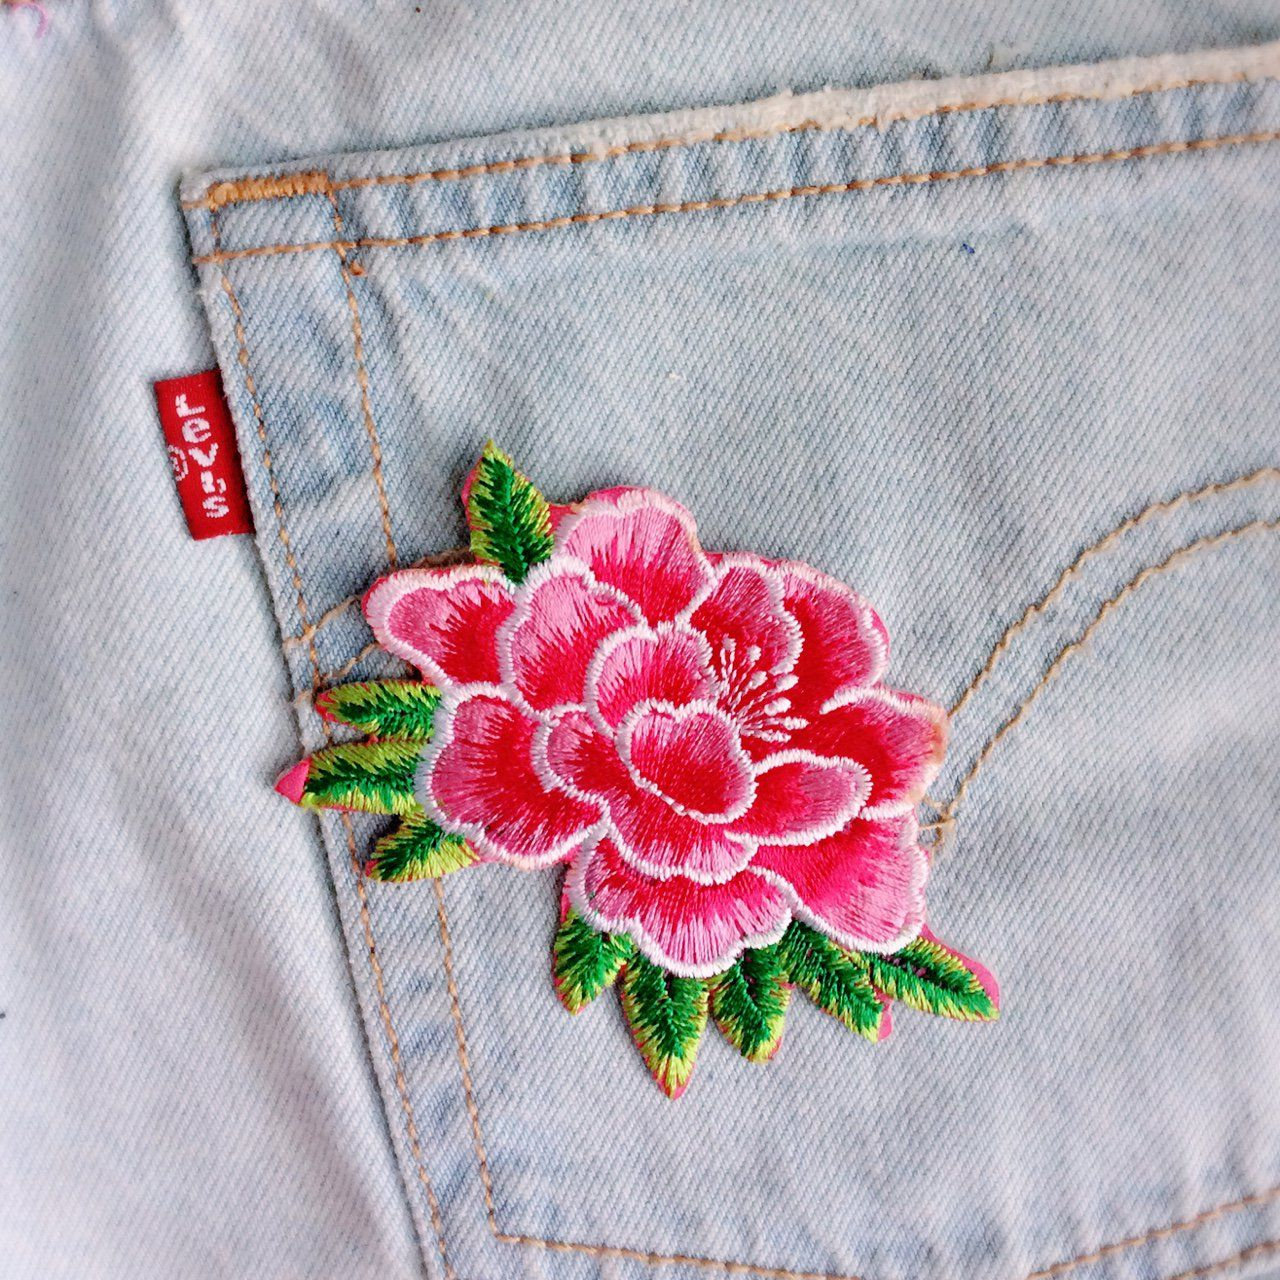 dffa4986e83 🌒🌒🌒M/pink peony/flowers/free shipping/iron on patches/embroidery ...